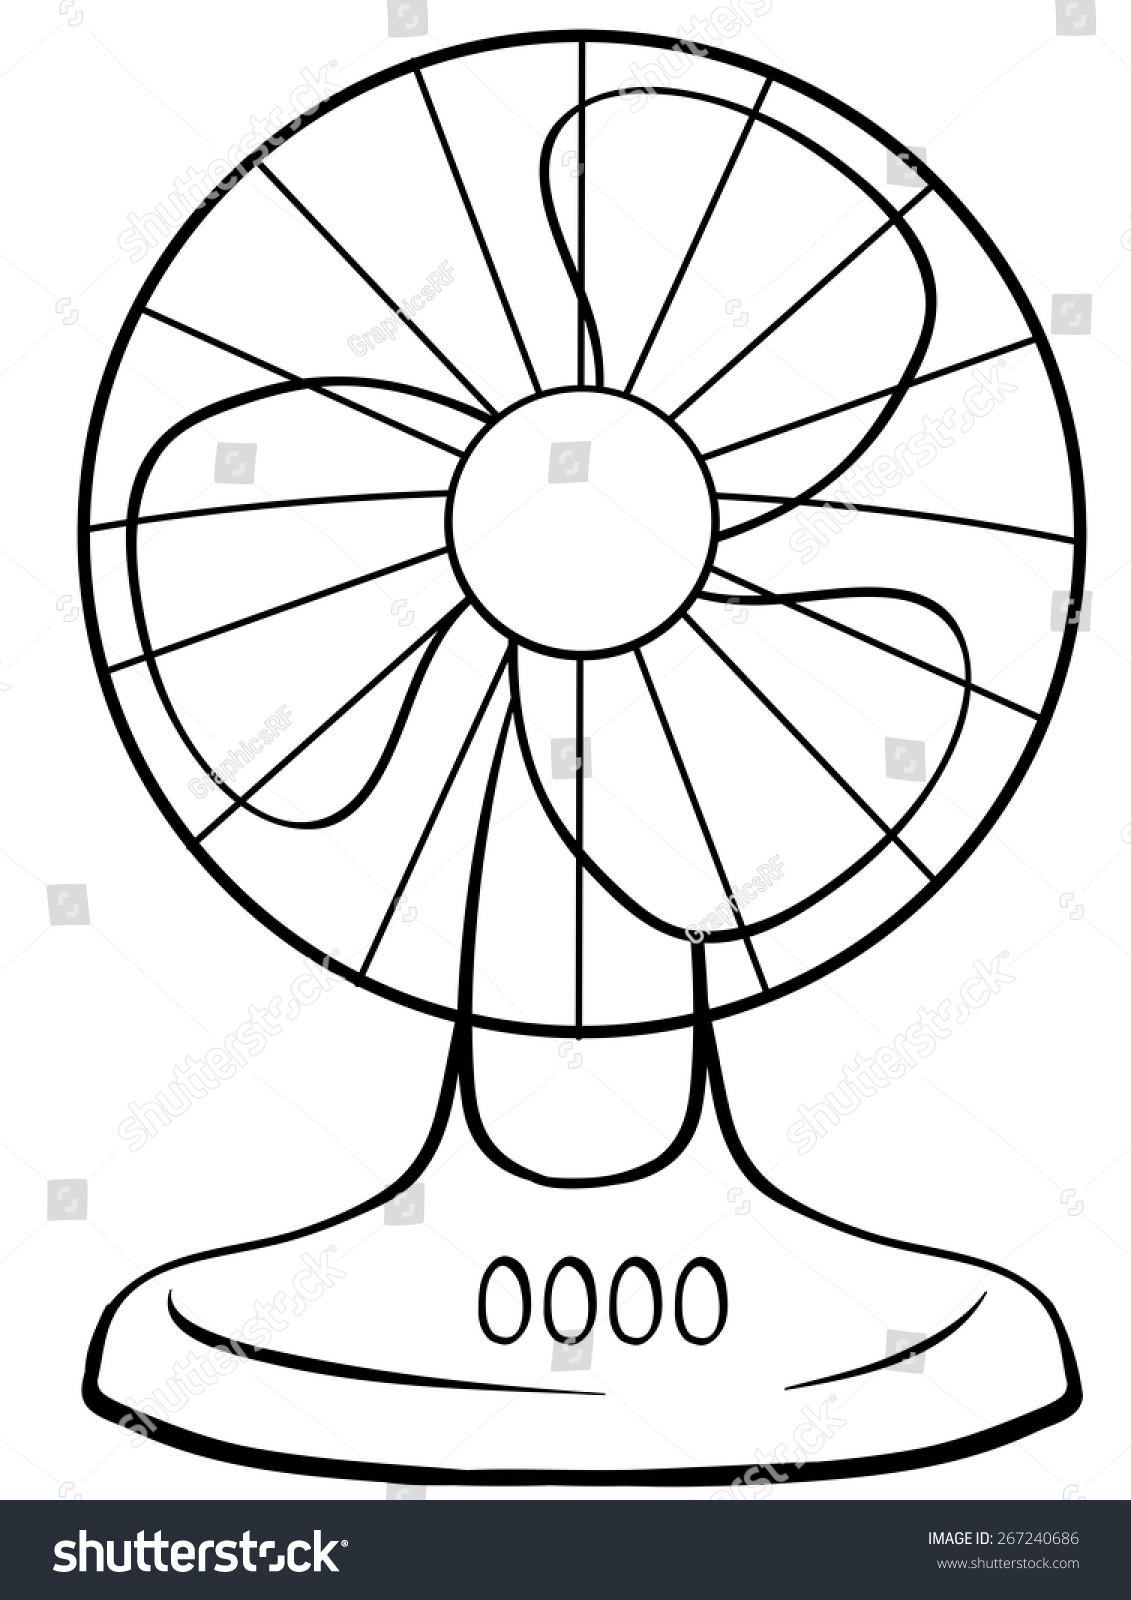 electric fan clipart black and white 6 | Clipart Station for Fan Clipart Black And White  54lyp